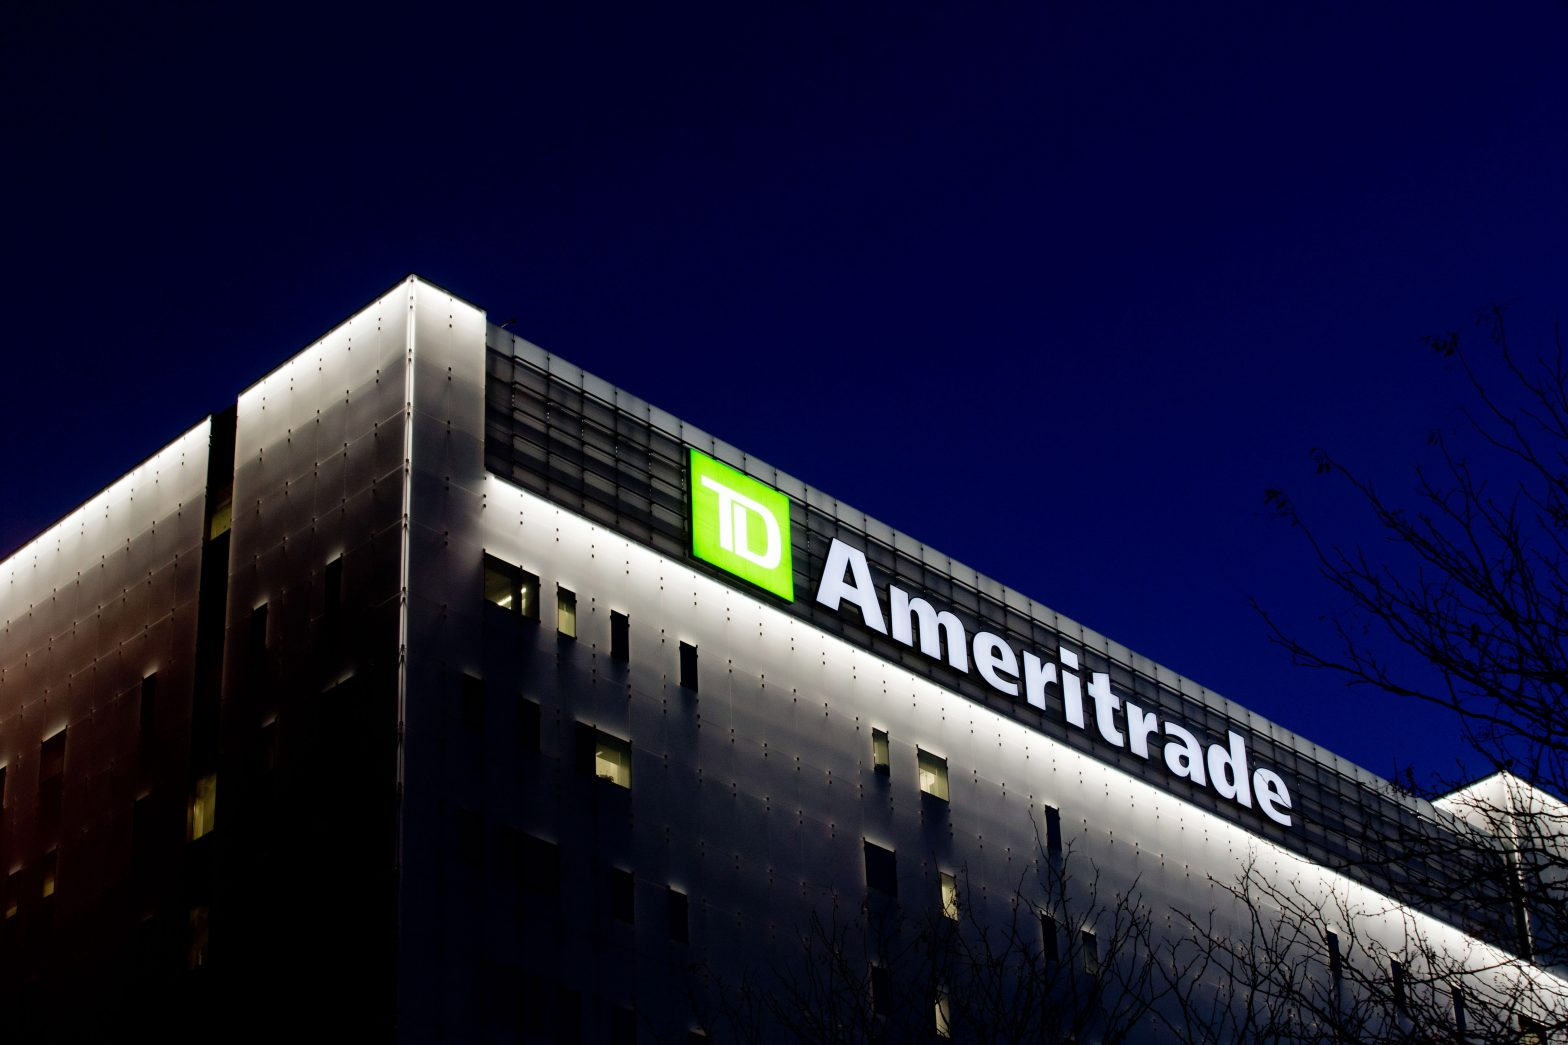 The end of commissions for trading is near as TD Ameritrade cuts to zero, matching Schwab – CNBC